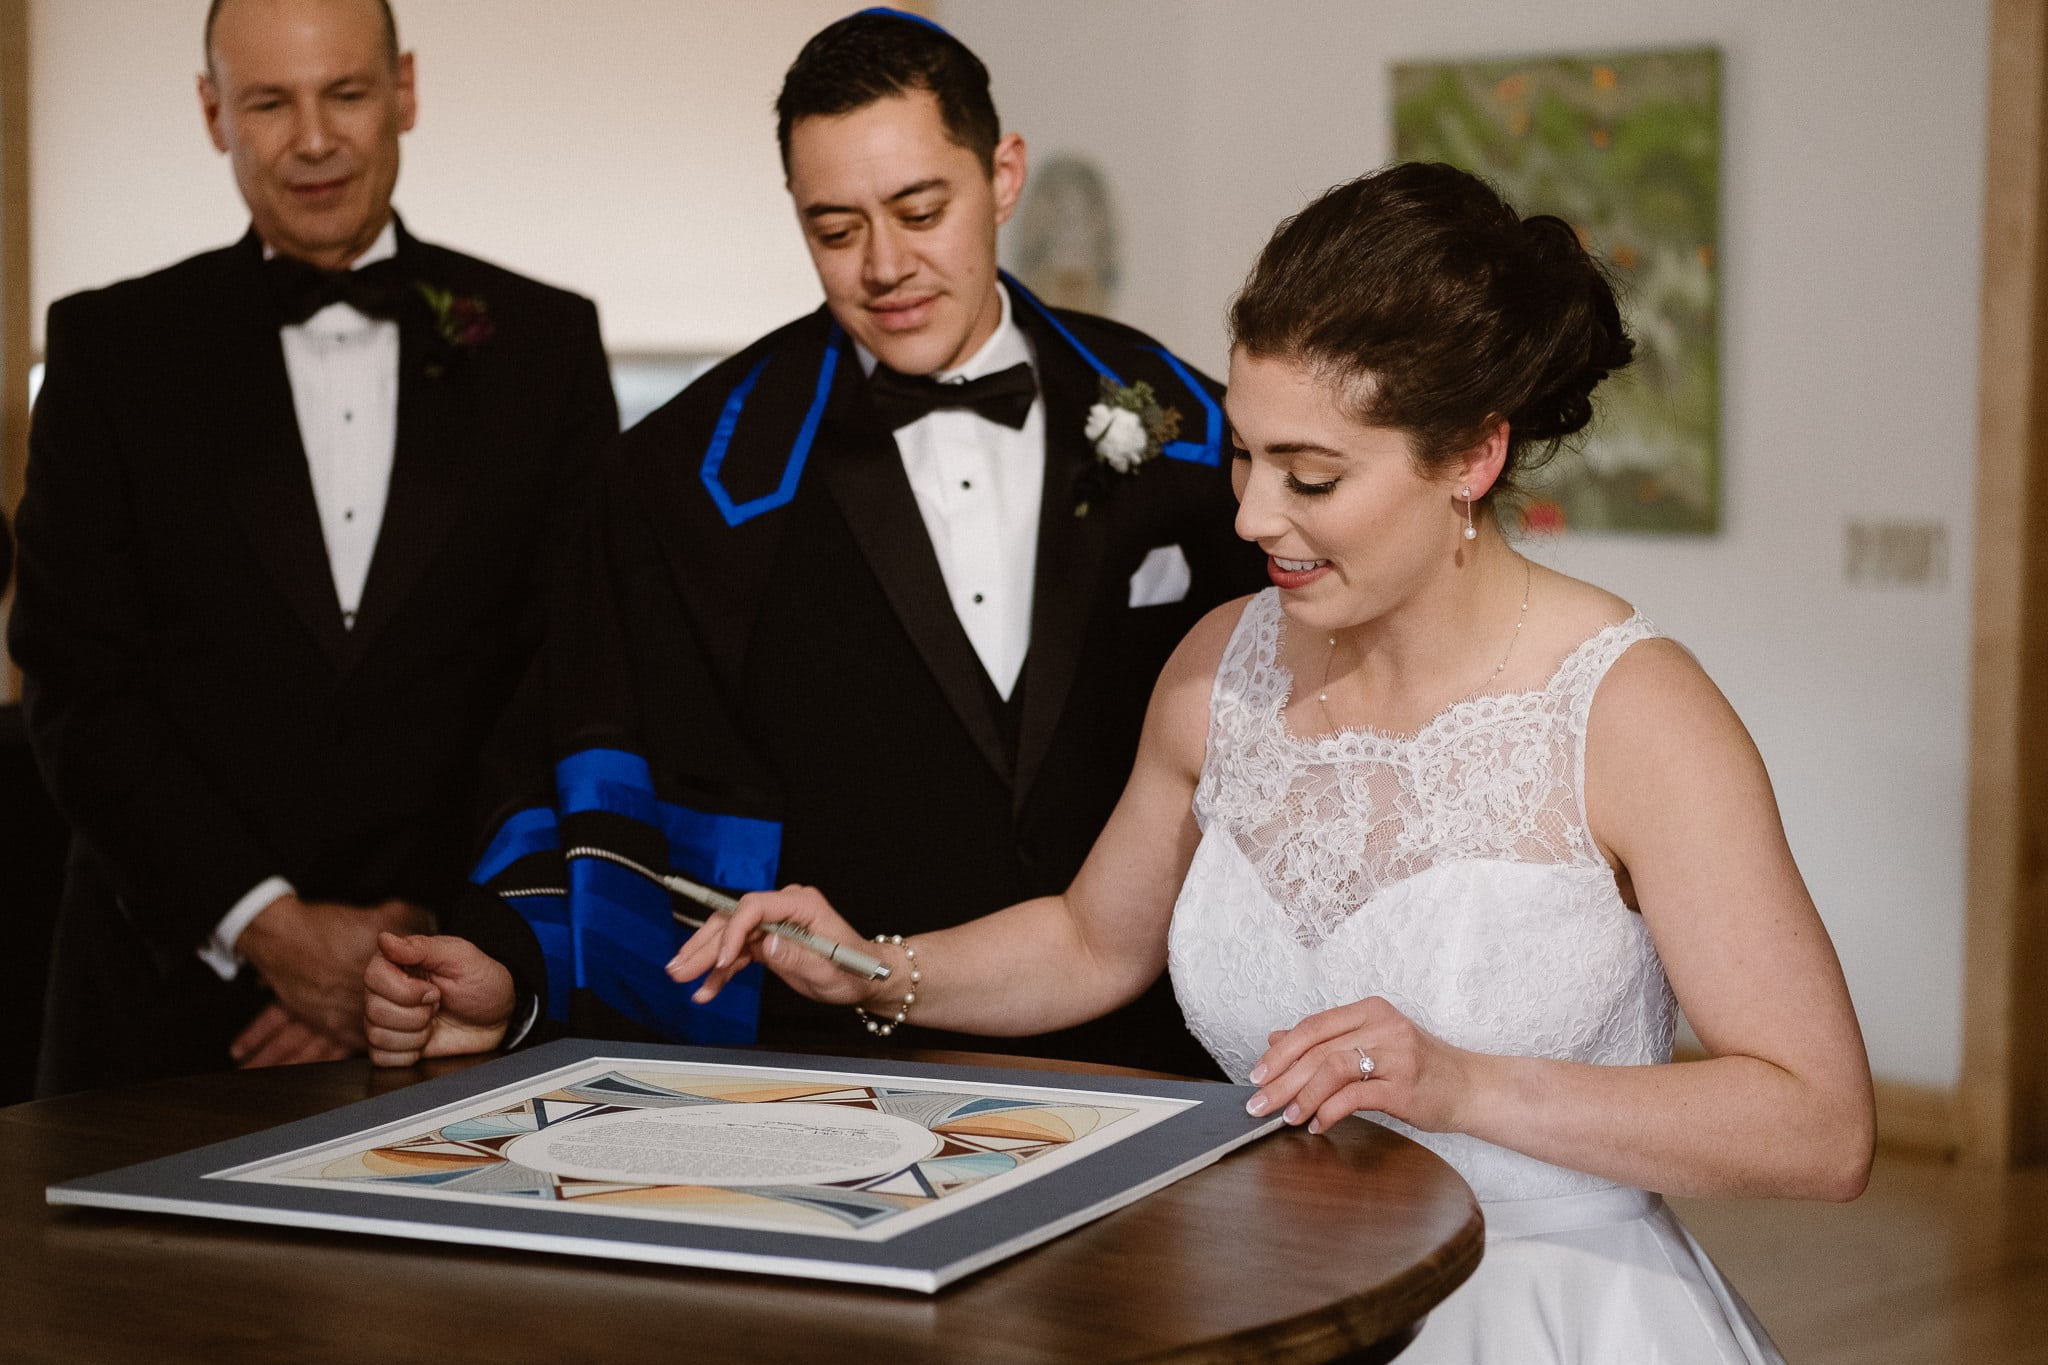 Rembrandt Yard wedding photographer, Boulder wedding photographer, Colorado Jewish wedding, ketubah signing